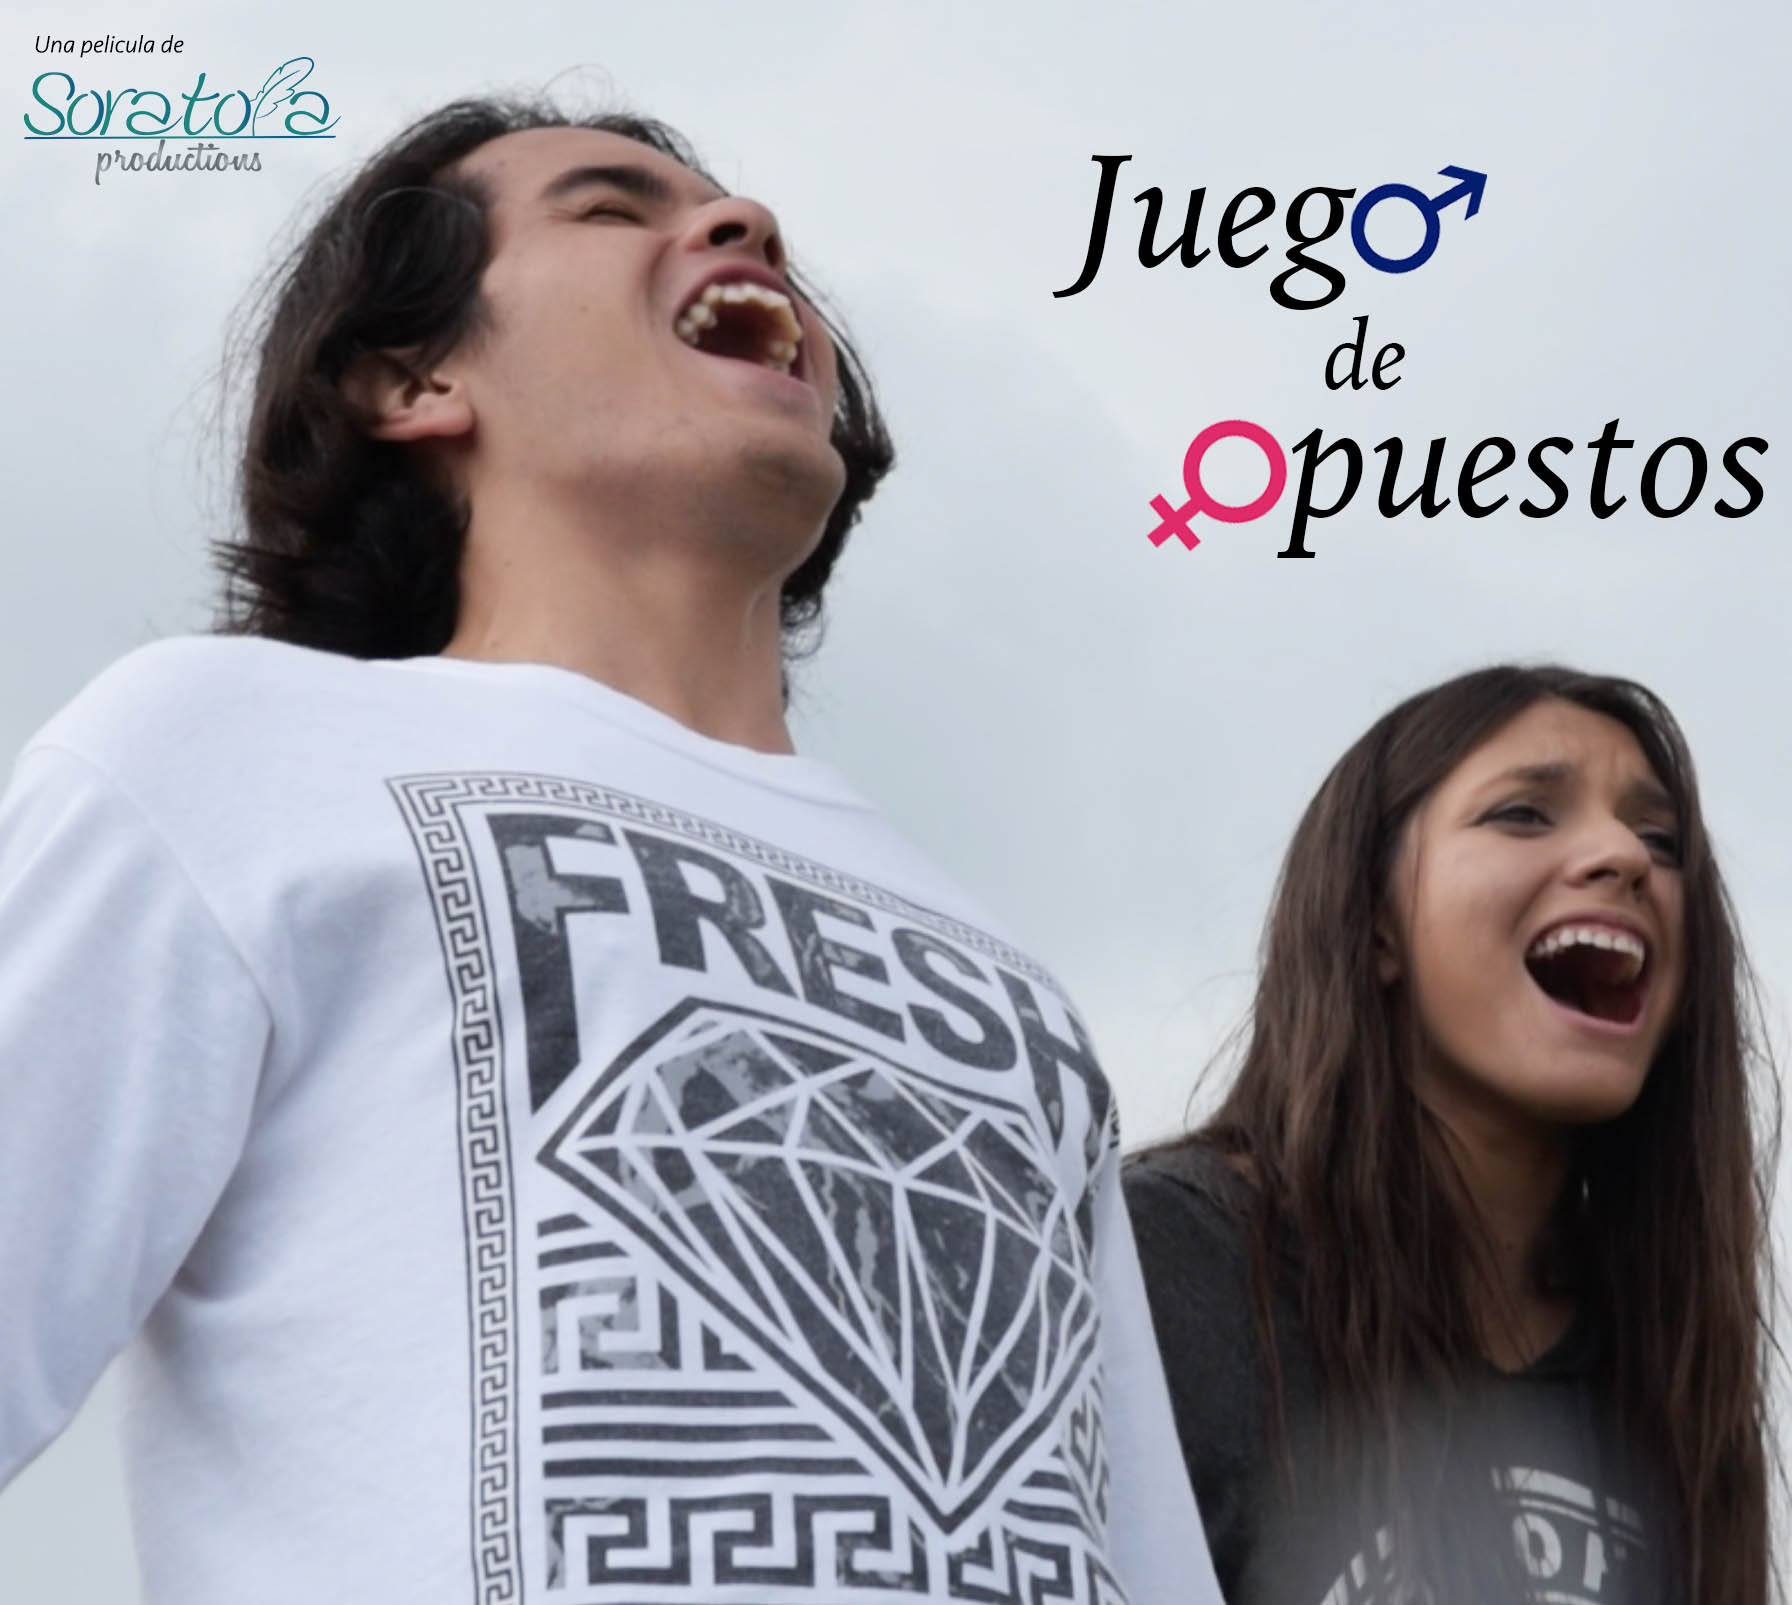 Juego de Opuestos (2015) - (Short Film)Logline:Julia lost the meaning of life and takes a decision to kill herself, but Raul wants to make her fall in love with life again.Director/Screenwriter: Elizabeth Soto-Lara.Director of Photography: Javier SánchezGenre: Romance/Drama.Country: Mexico